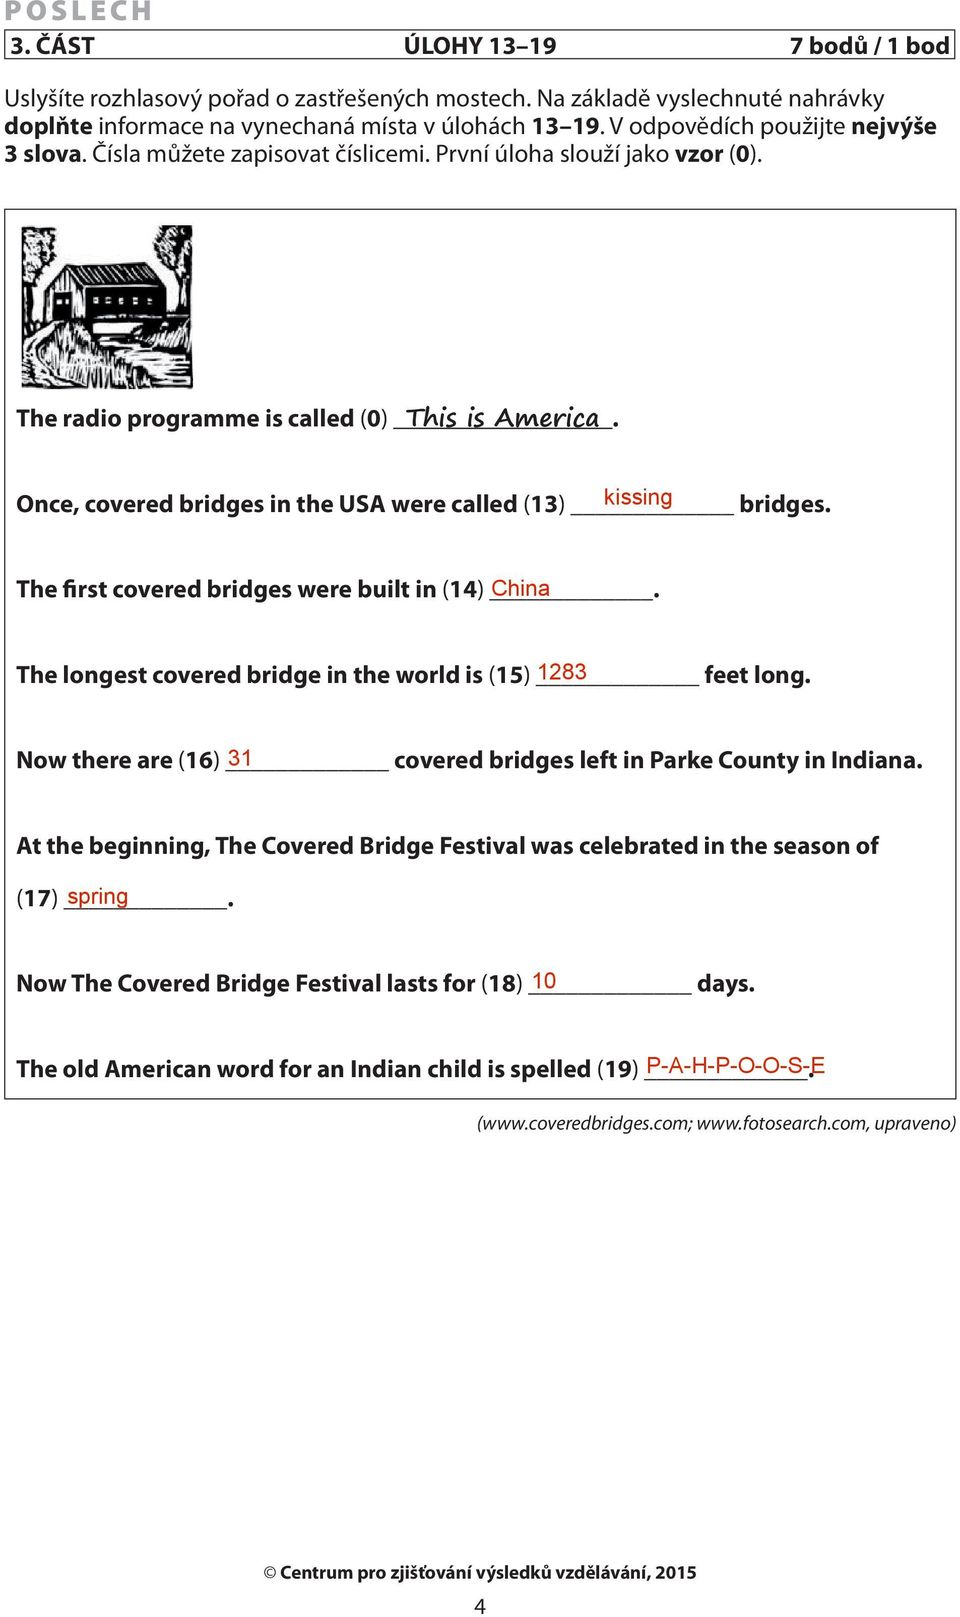 Once, covered bridges in the USA were called (13) bridges. The first covered bridges were built in (14). The longest covered bridge in the world is (15) feet long.